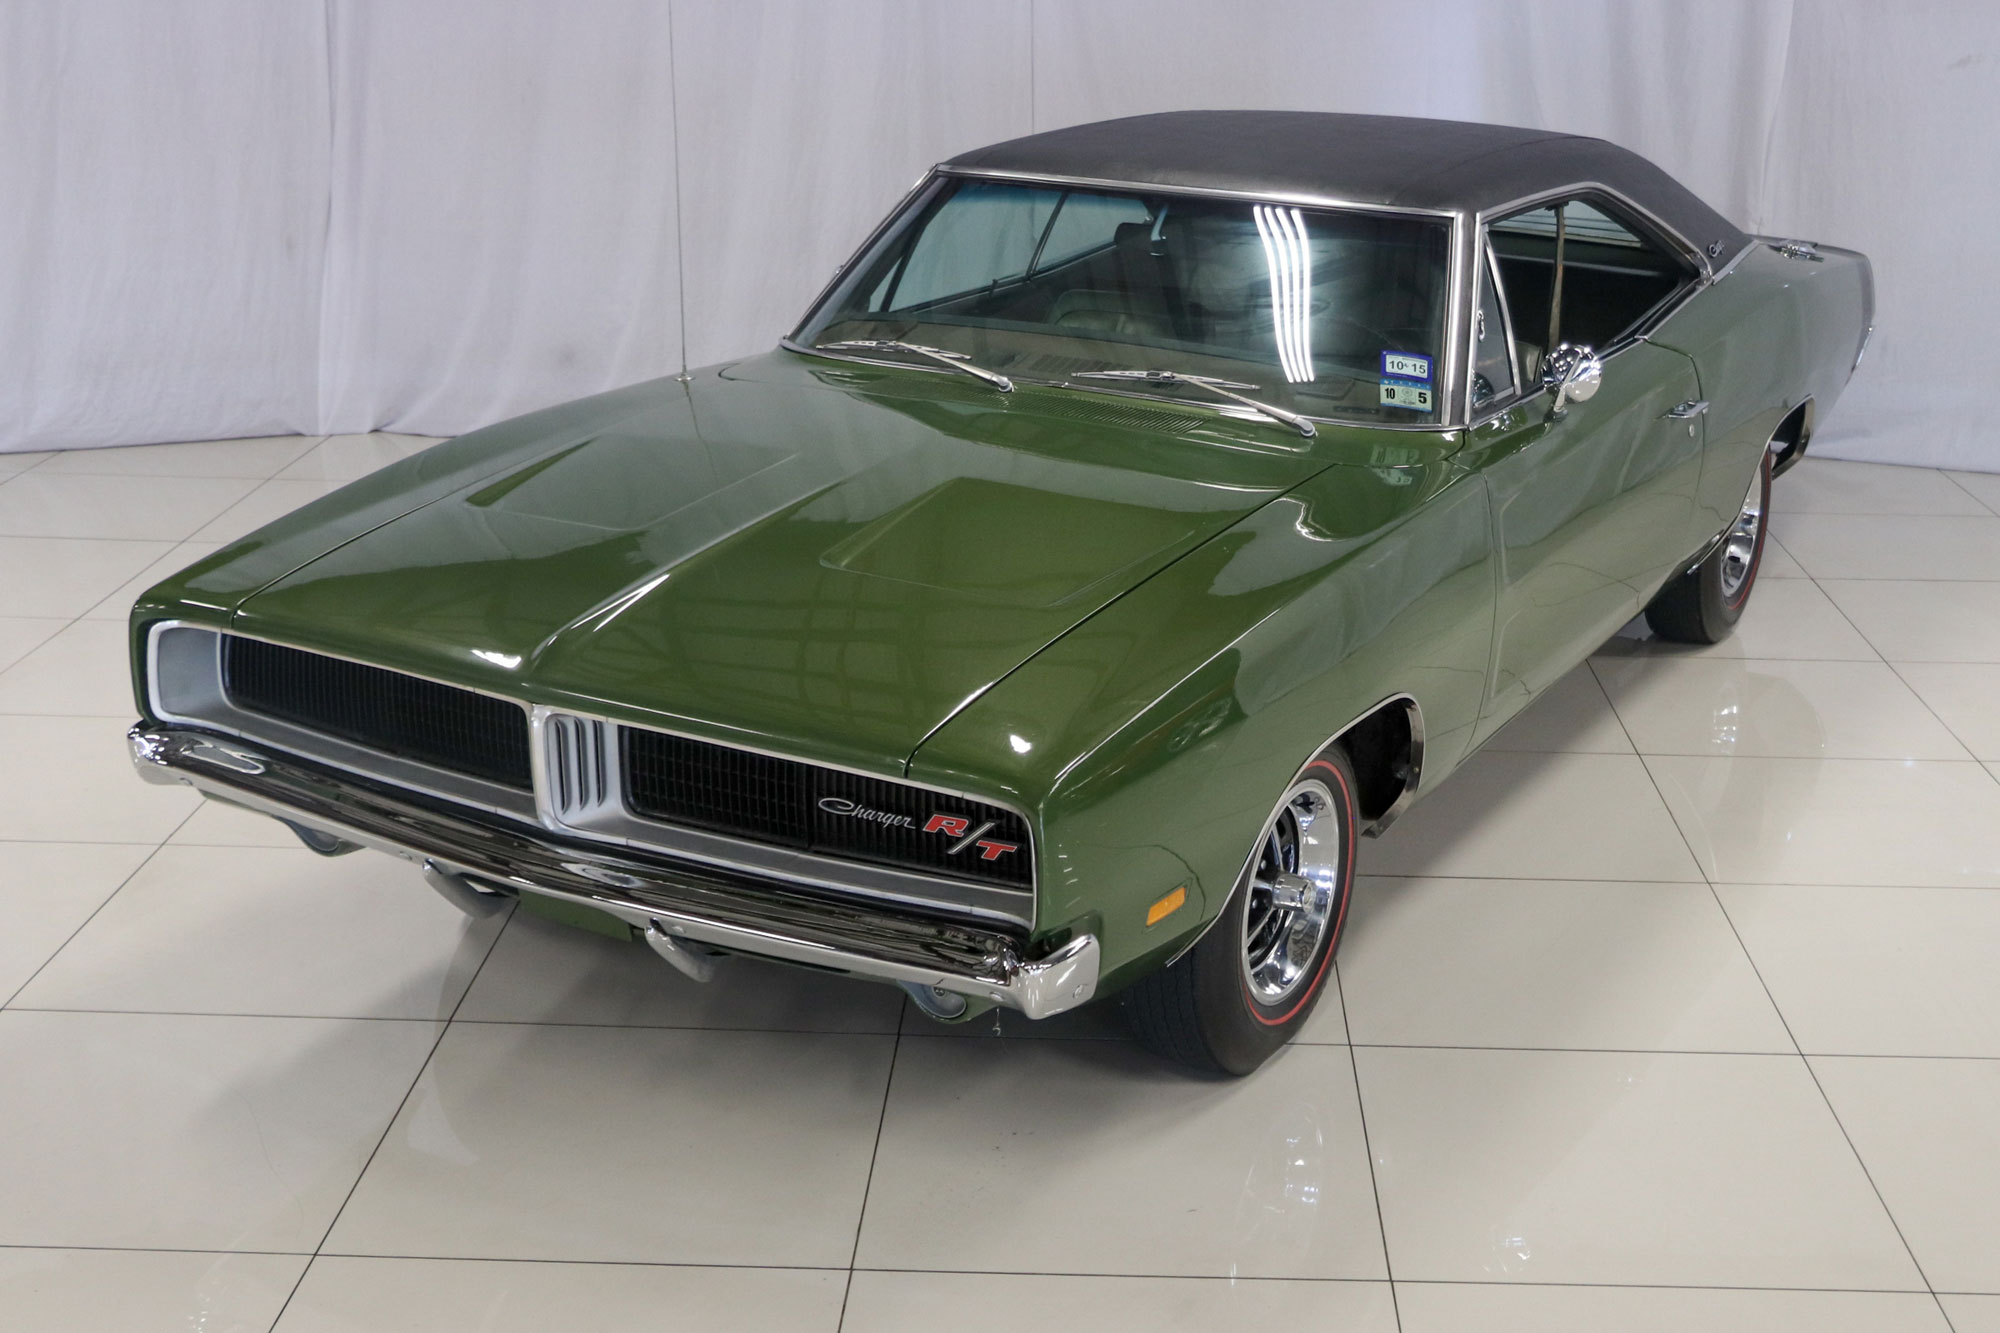 1969 Dodge Charger Creative Rides Blower Motor R1100000